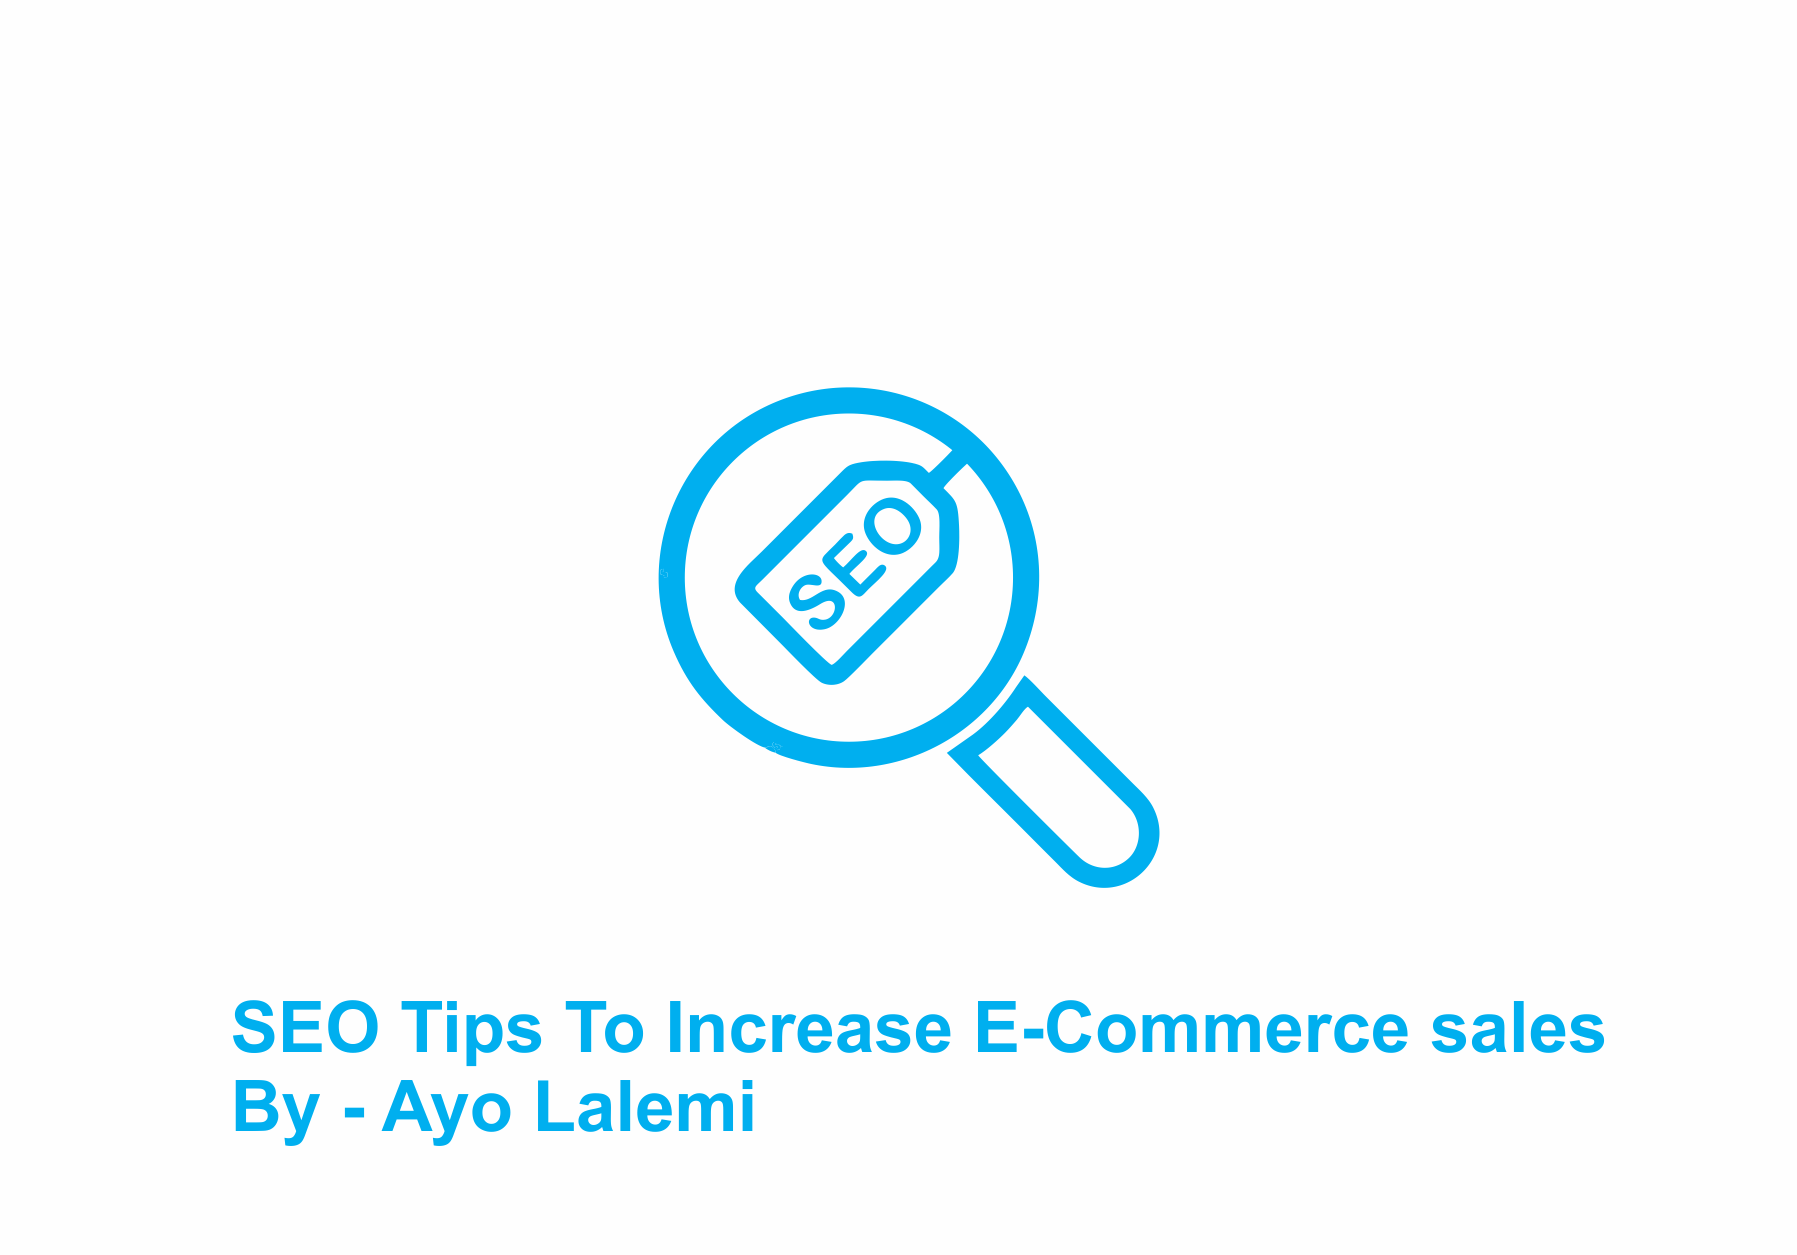 SEO Tips To Increase E-Commerce sales